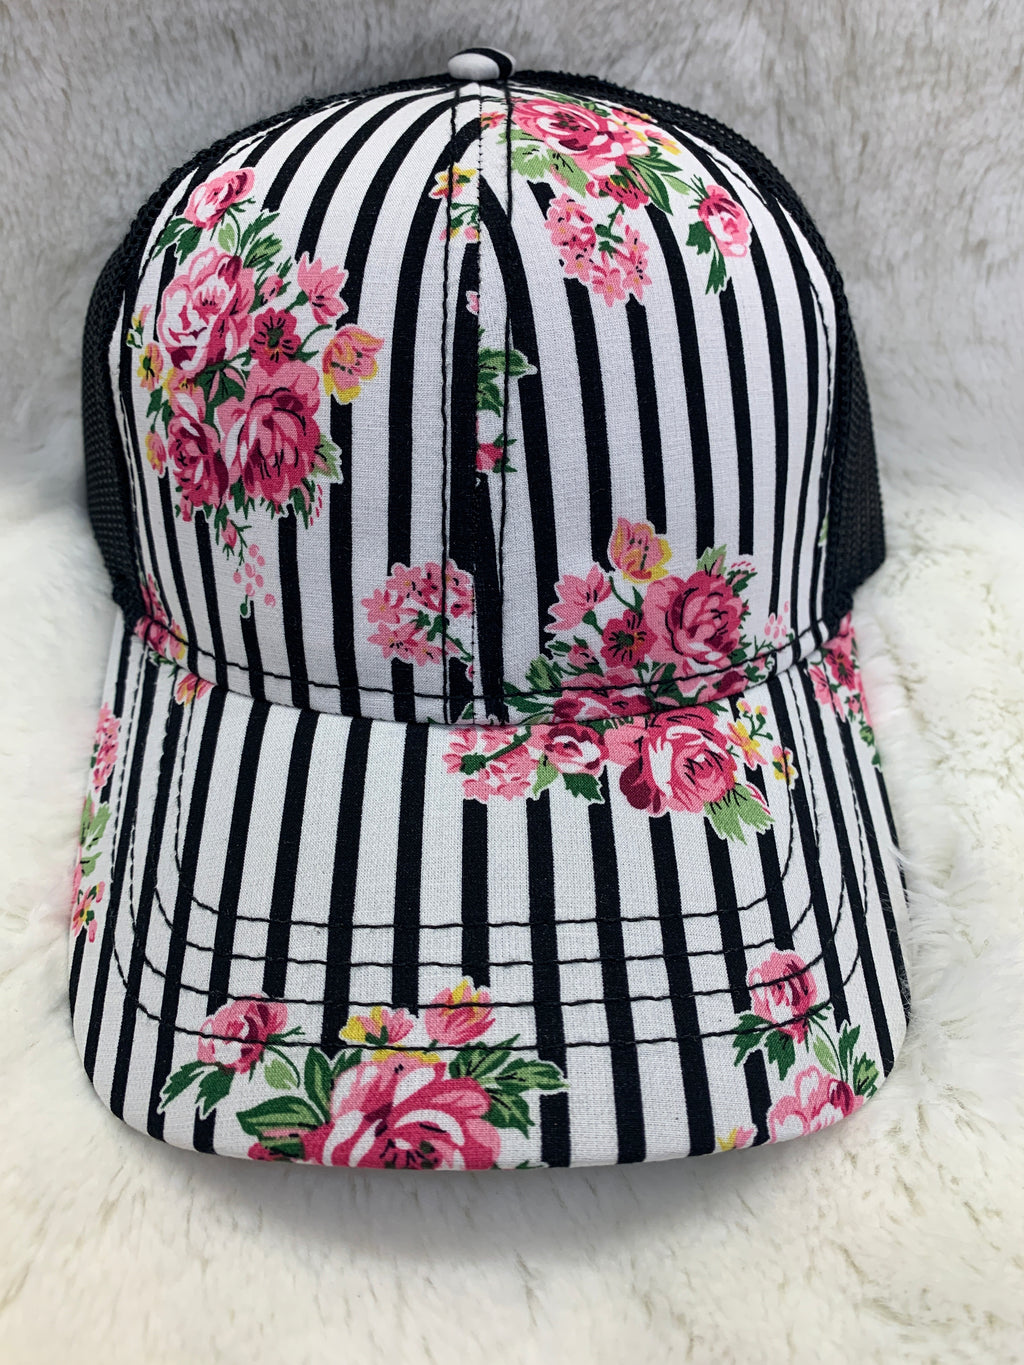 Floral Striped Ball Cap